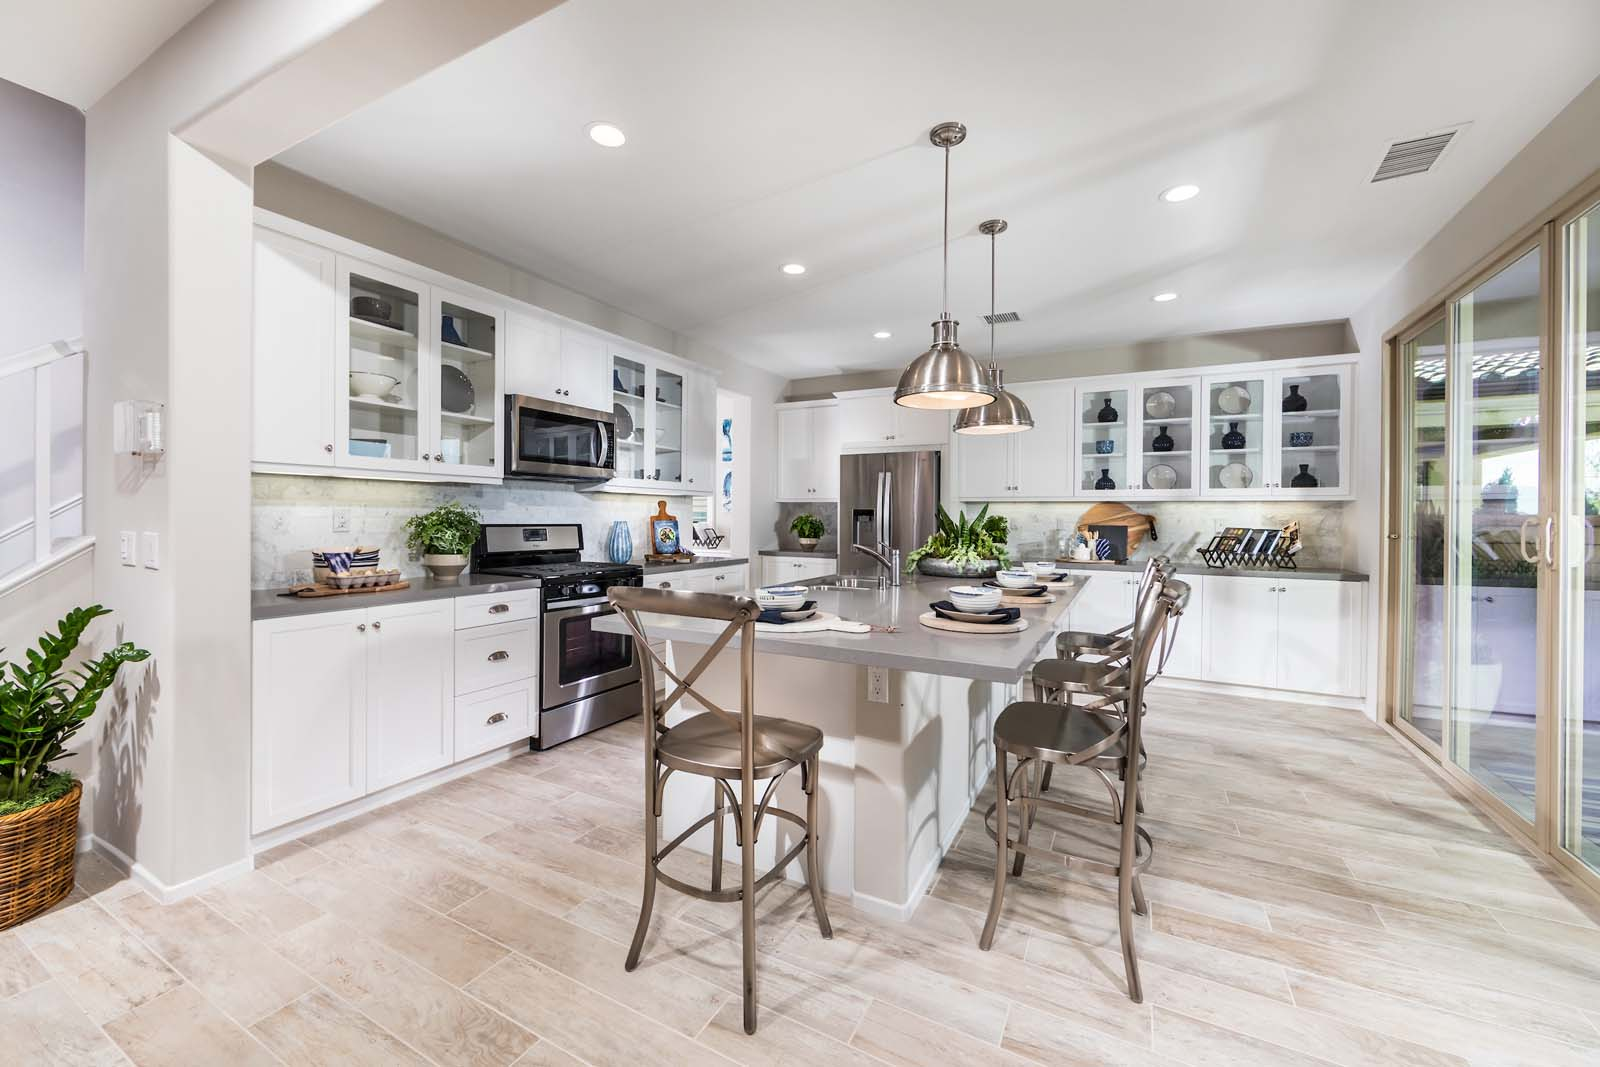 Kitchen Residence 2 | Marigold at New Haven in Ontario Ranch, CA | Brookfield Residential